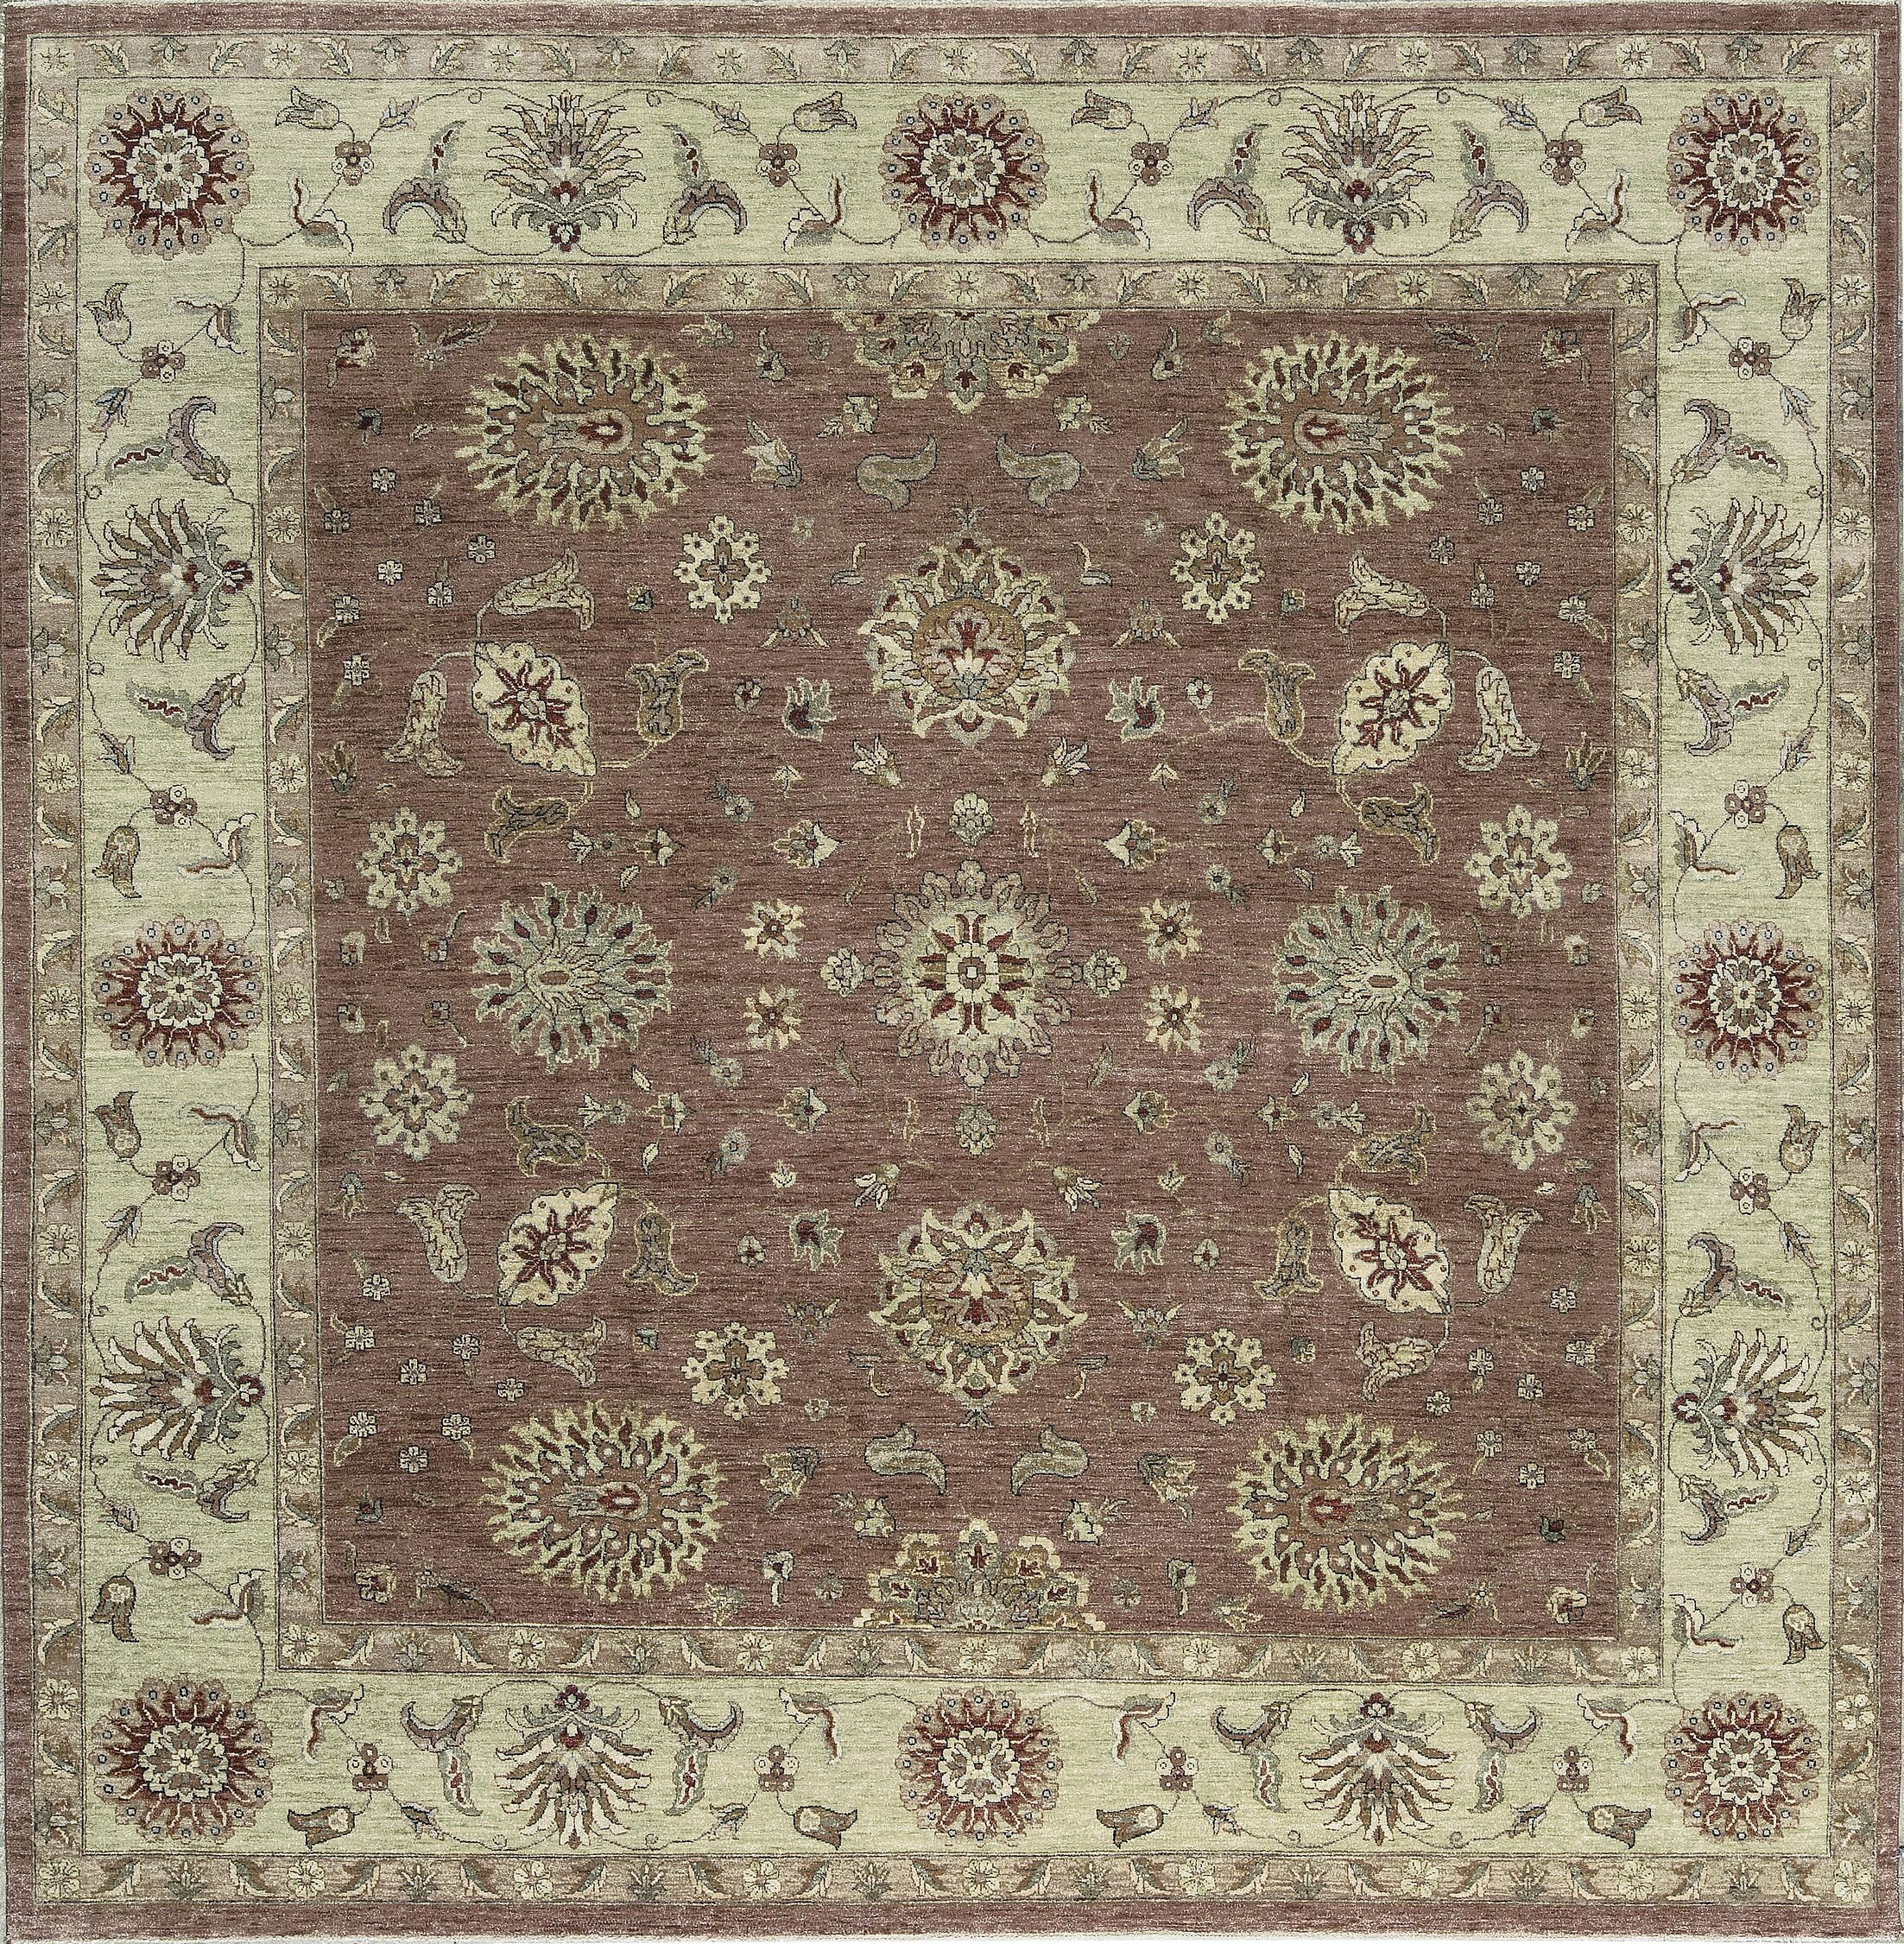 One-of-a-Kind Ziegler Hand-Knotted Wool Rust/Green Indoor Area Rug